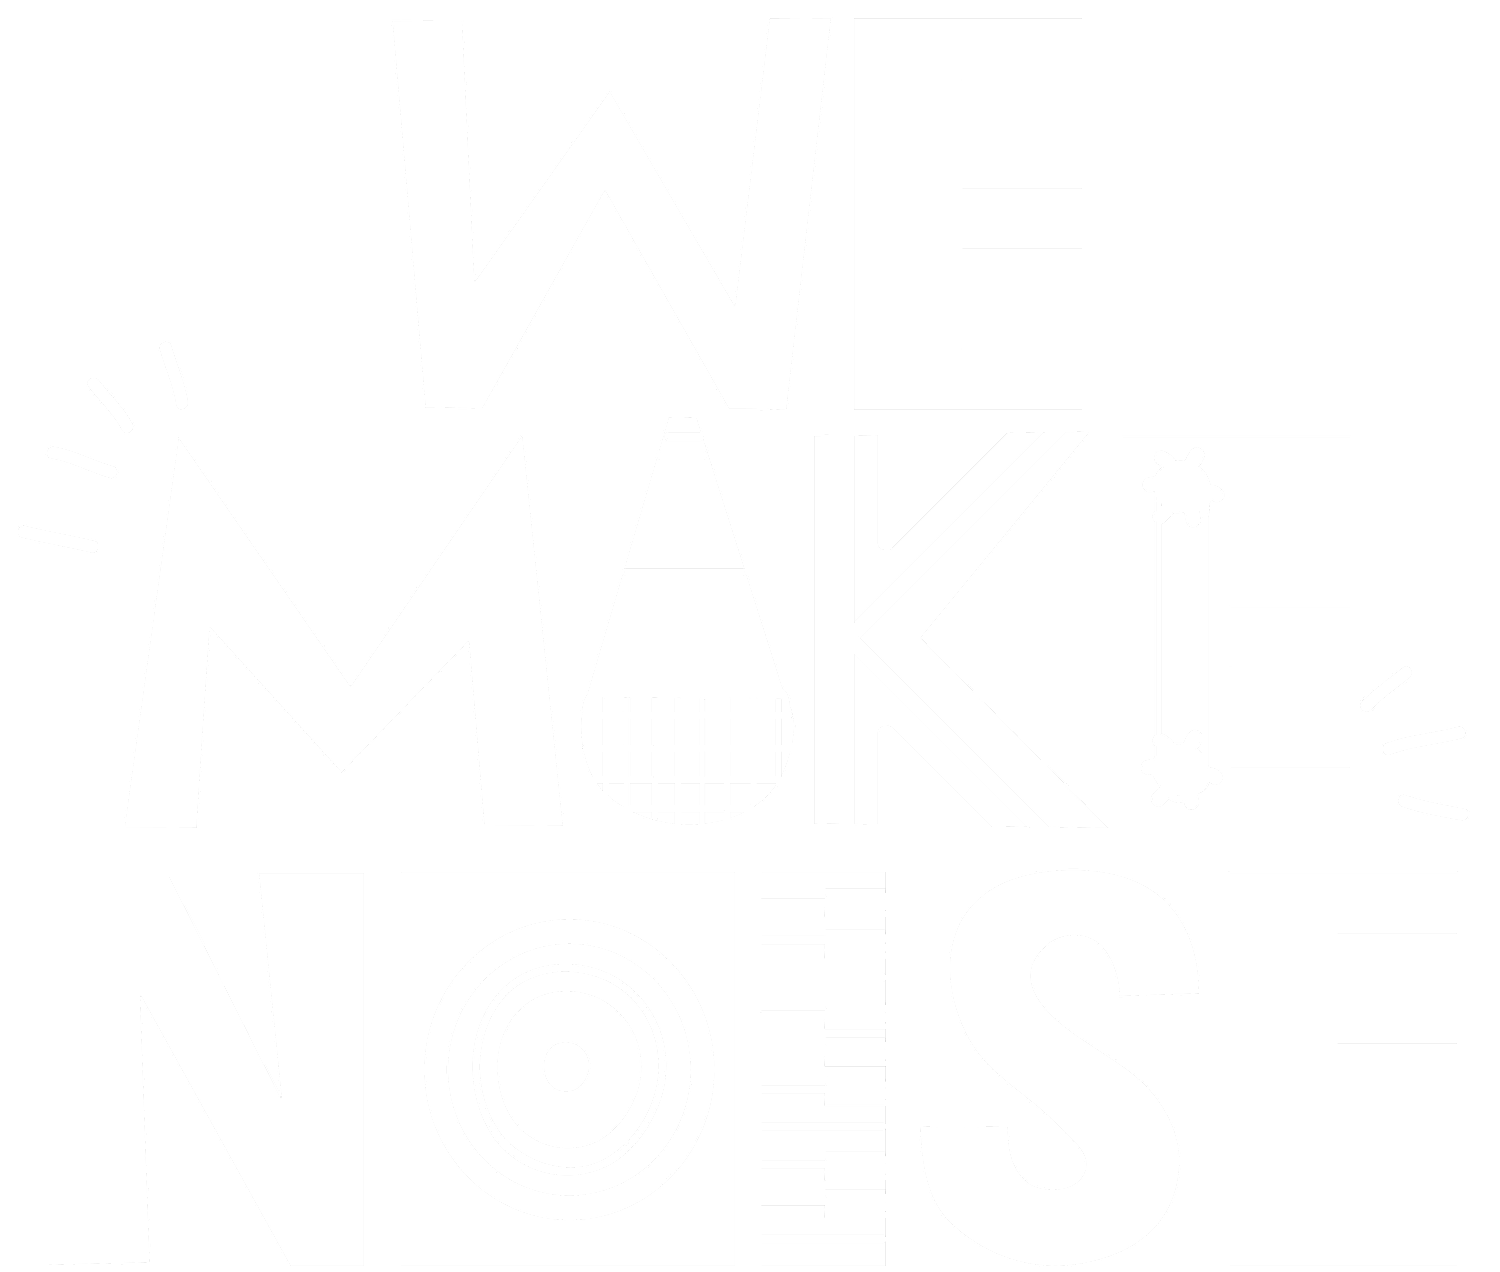 We Make Noise